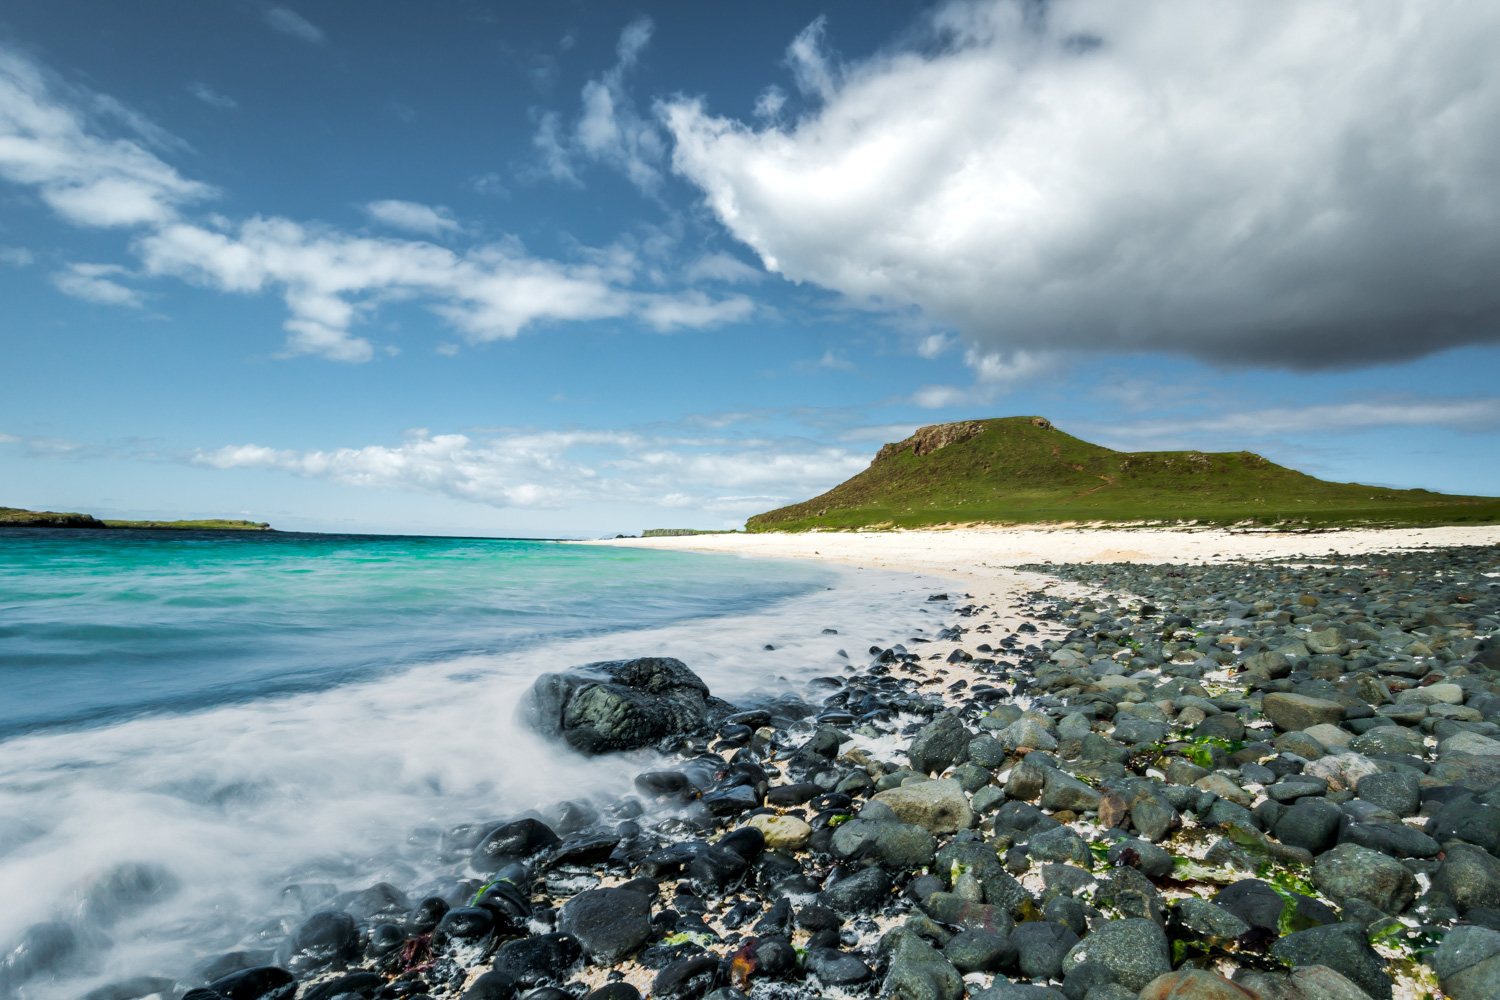 Coral Beach on the Isle of Skye is pictured here from a low angle. The sea is clear and turqoise toned with a beautiful green cliff pictured in the background.